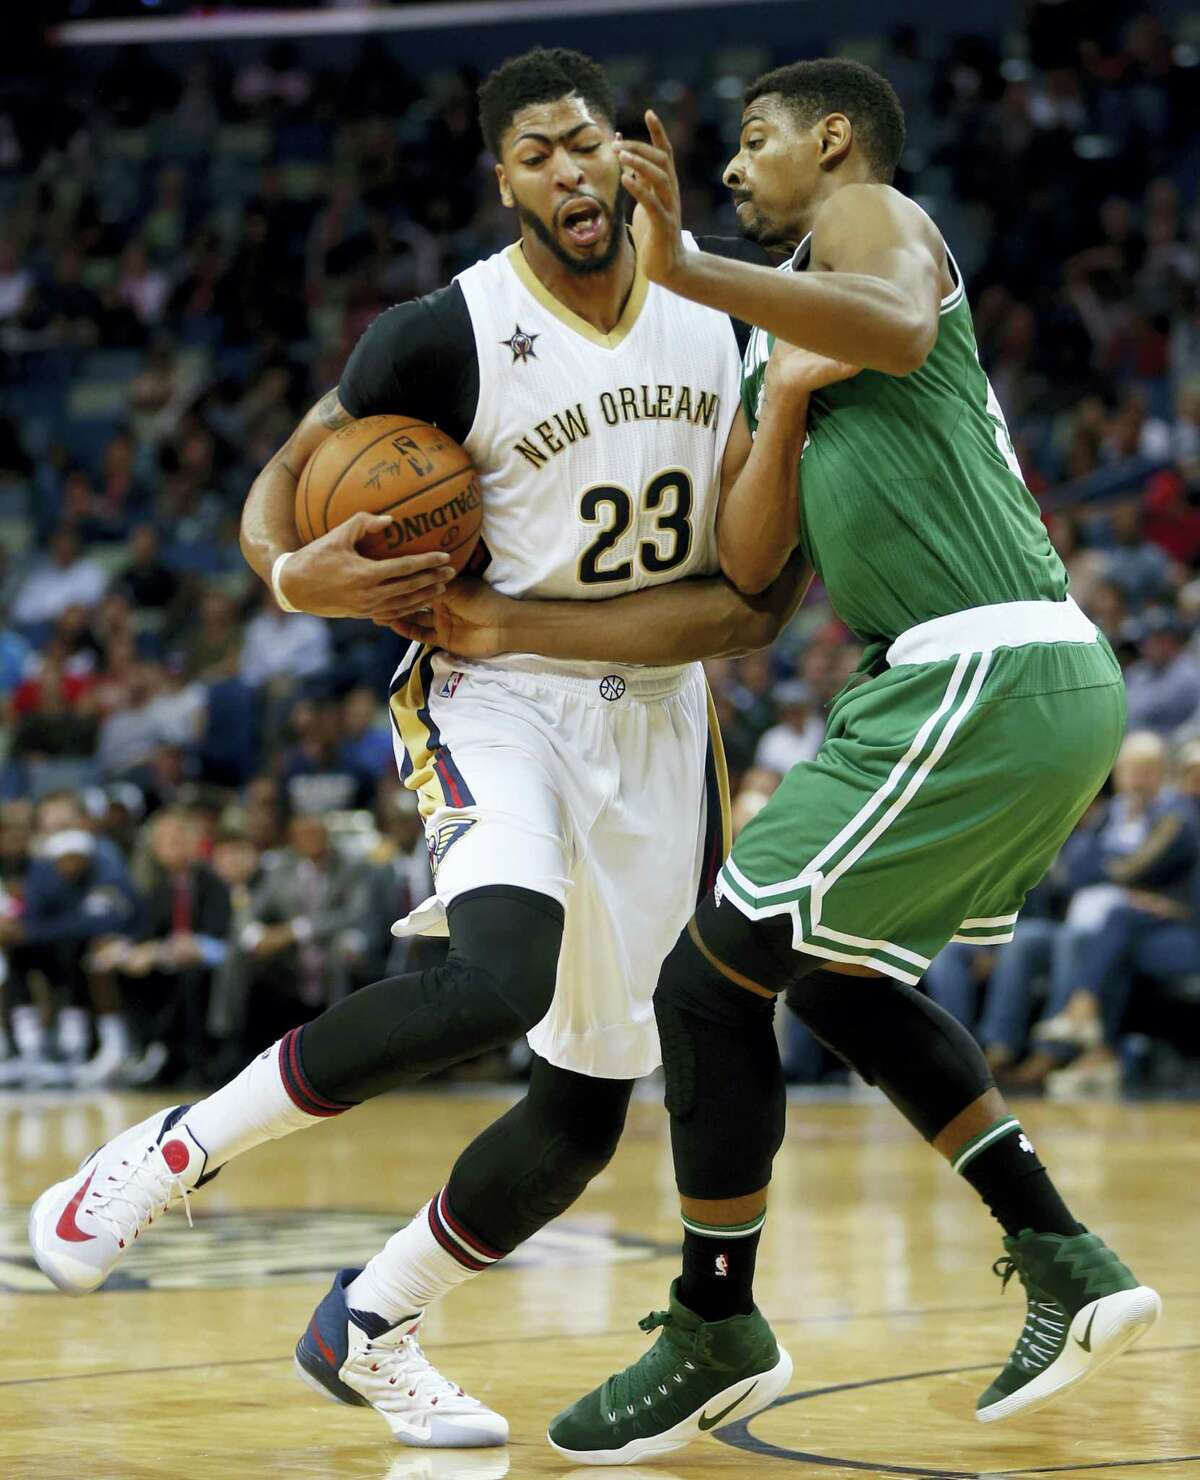 New Orleans Pelicans forward Anthony Davis (23) drives the lane against Boston Celtics forward Jordan Mickey in the first half of an NBA basketball game in New Orleans on Nov. 14, 2016.